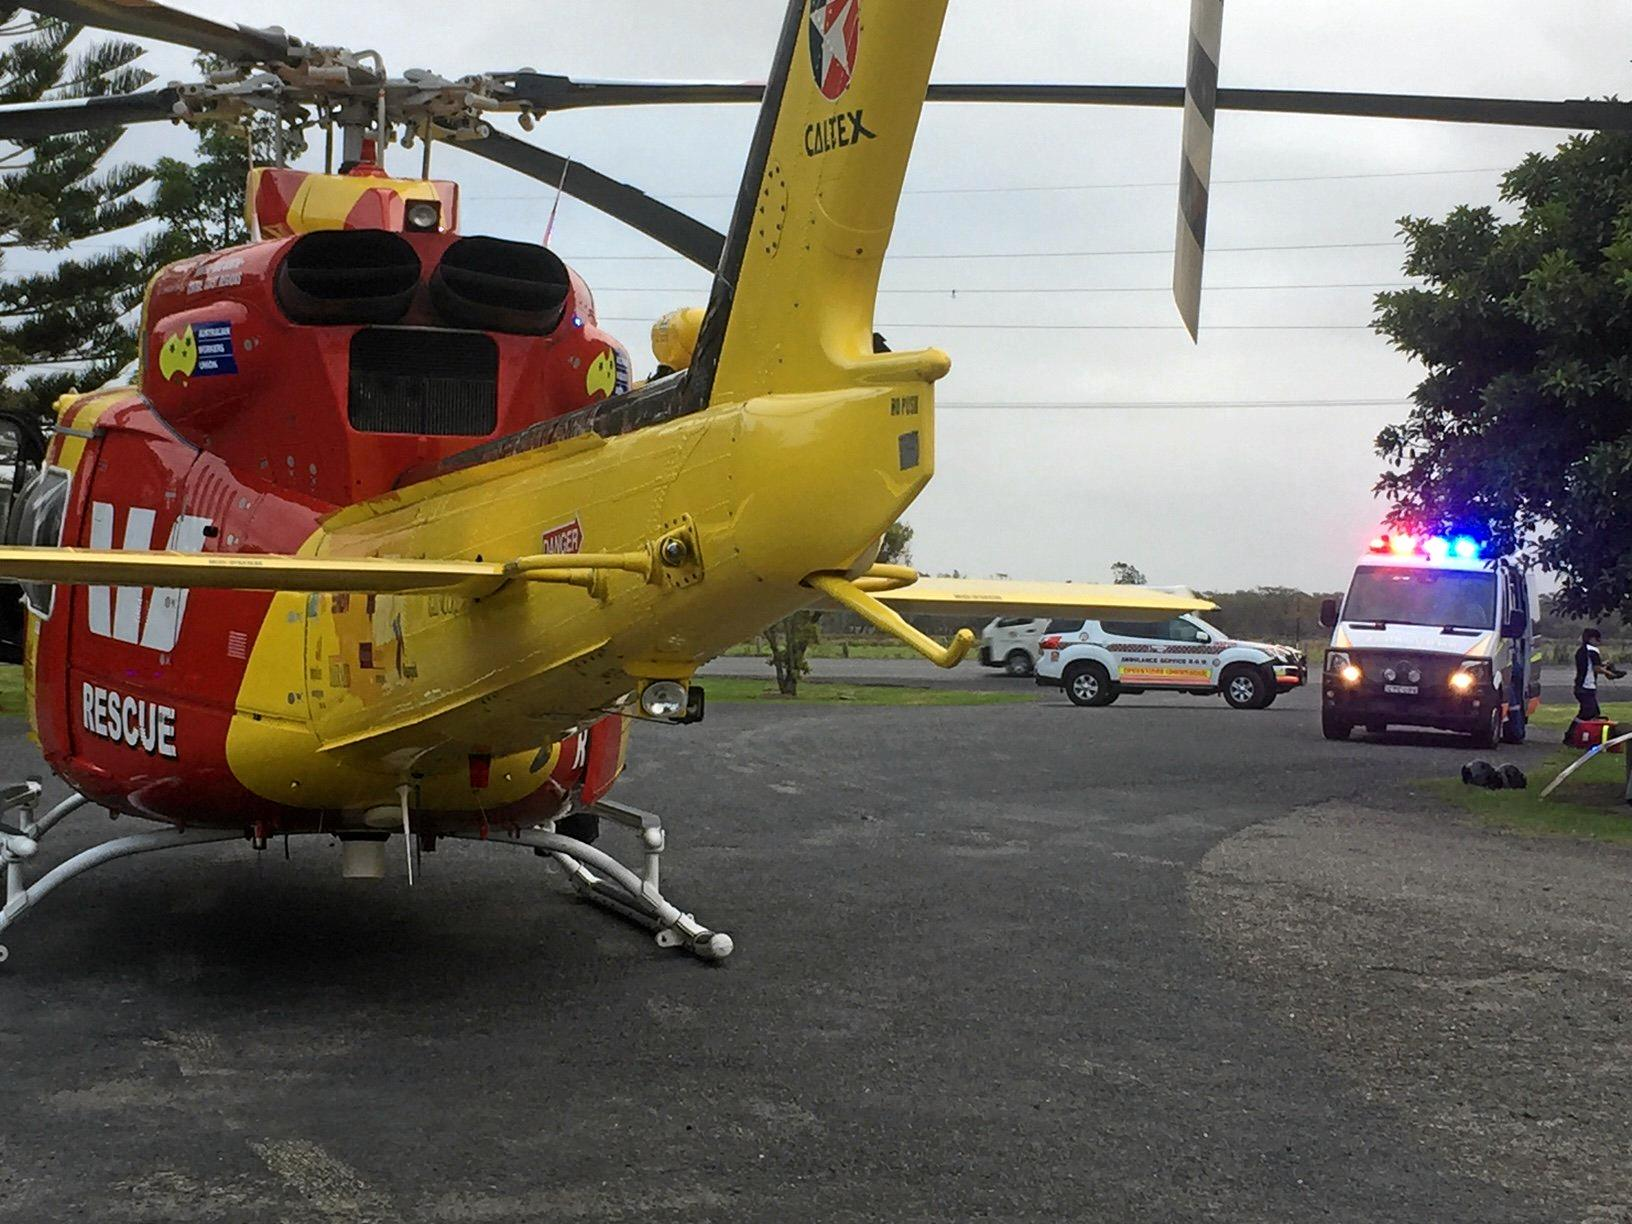 A teenage girl suffered spinal injuries in a bridge jumping incident at South West Rocks on Thursday evening.